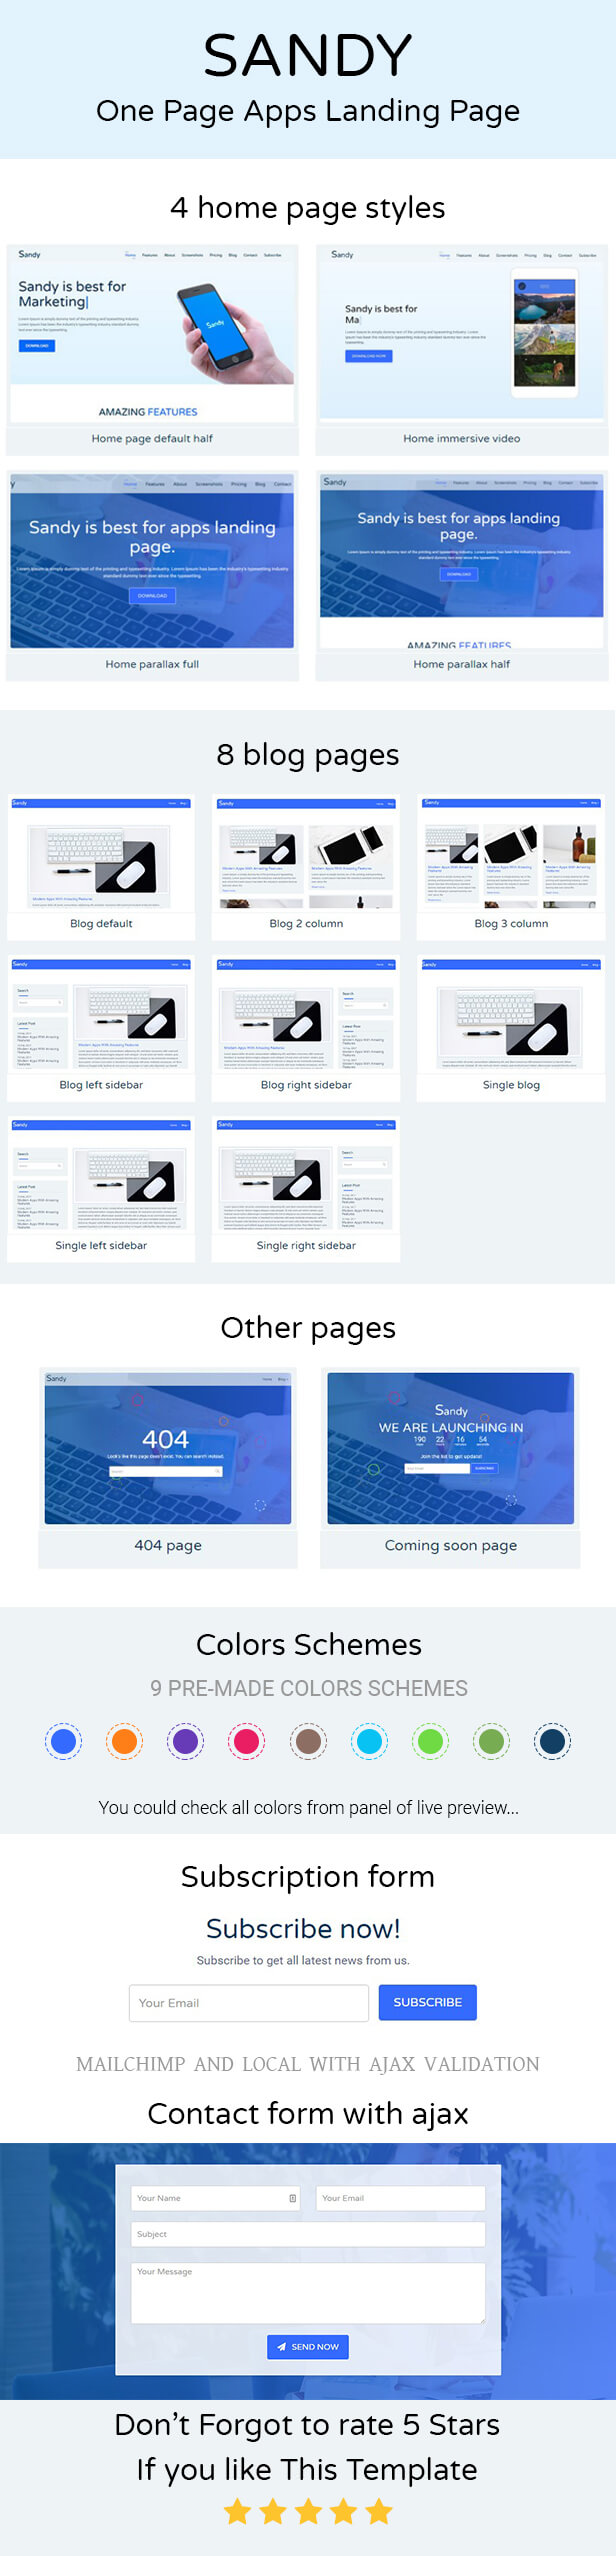 SANDY - One Page Apps Landing Page - 1